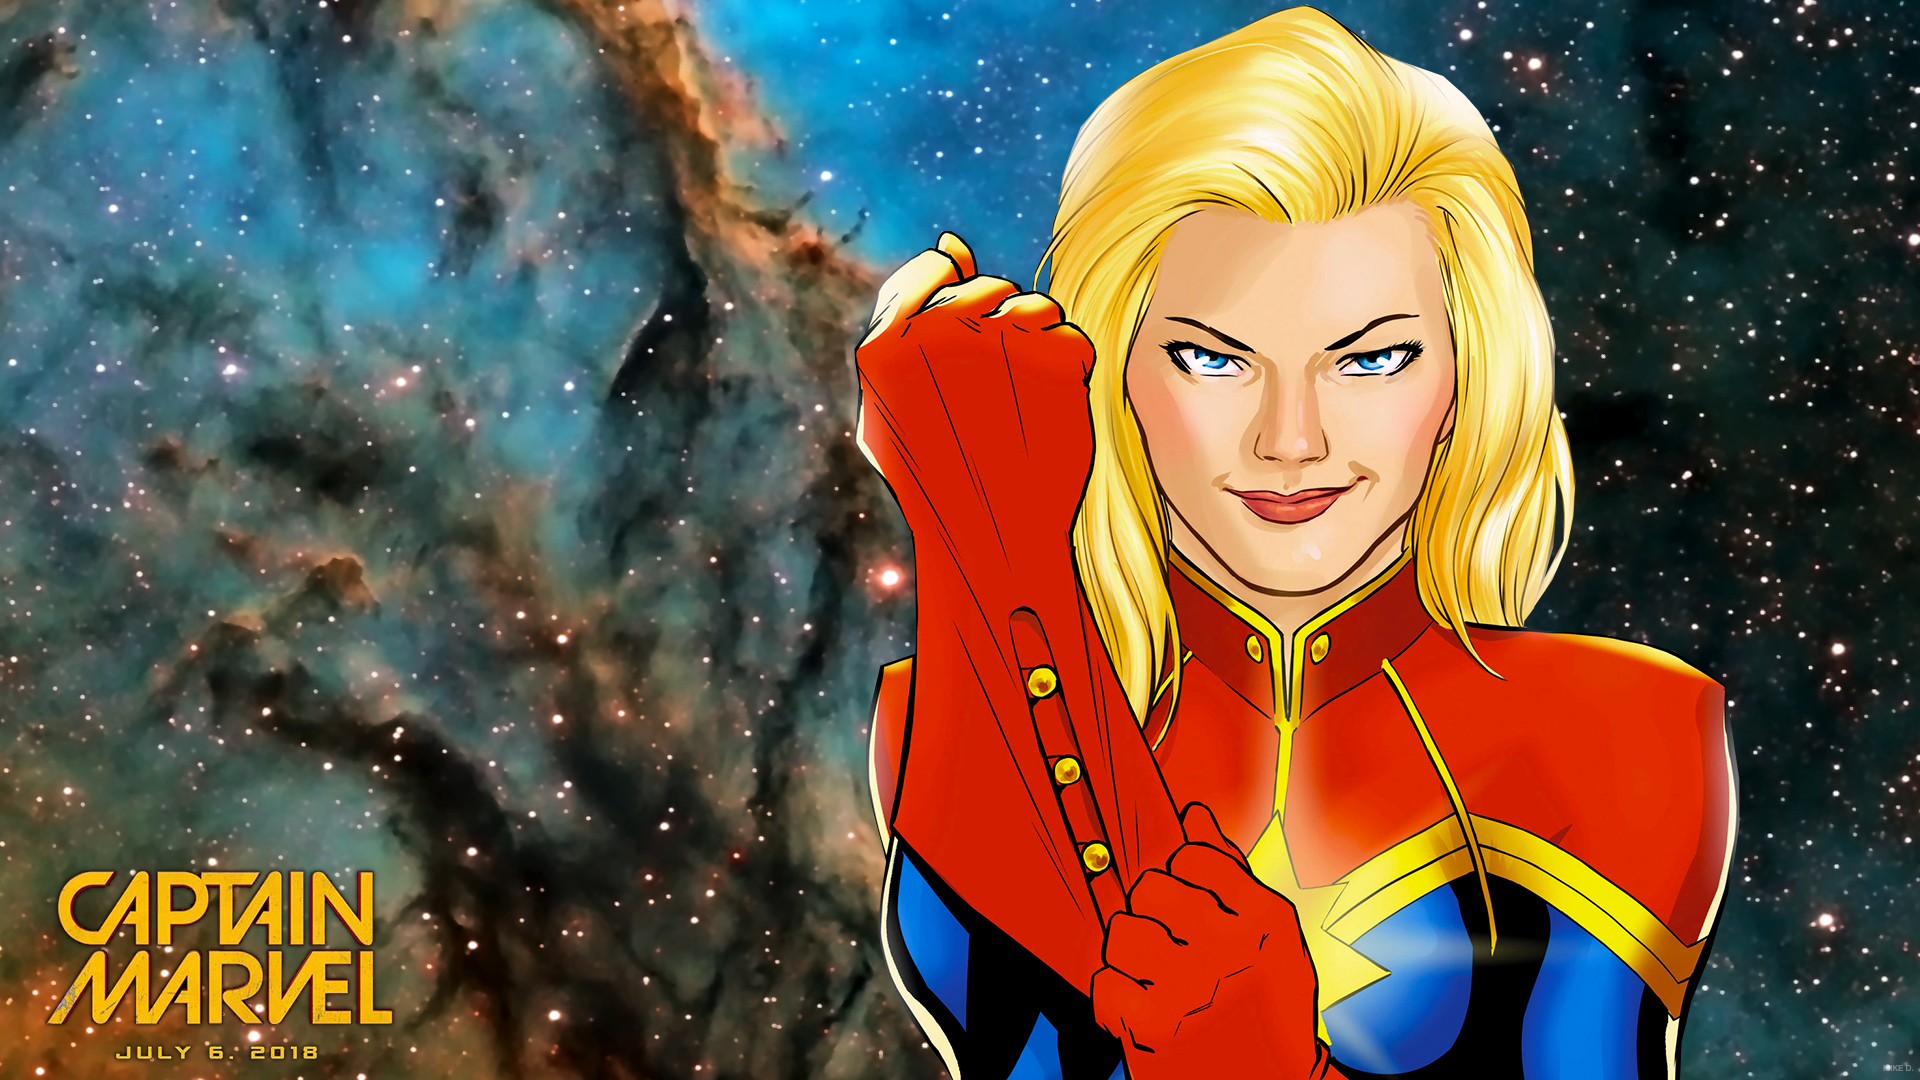 Download Hd Wallpapers 1080p With Superheroes Captain Marvel 13